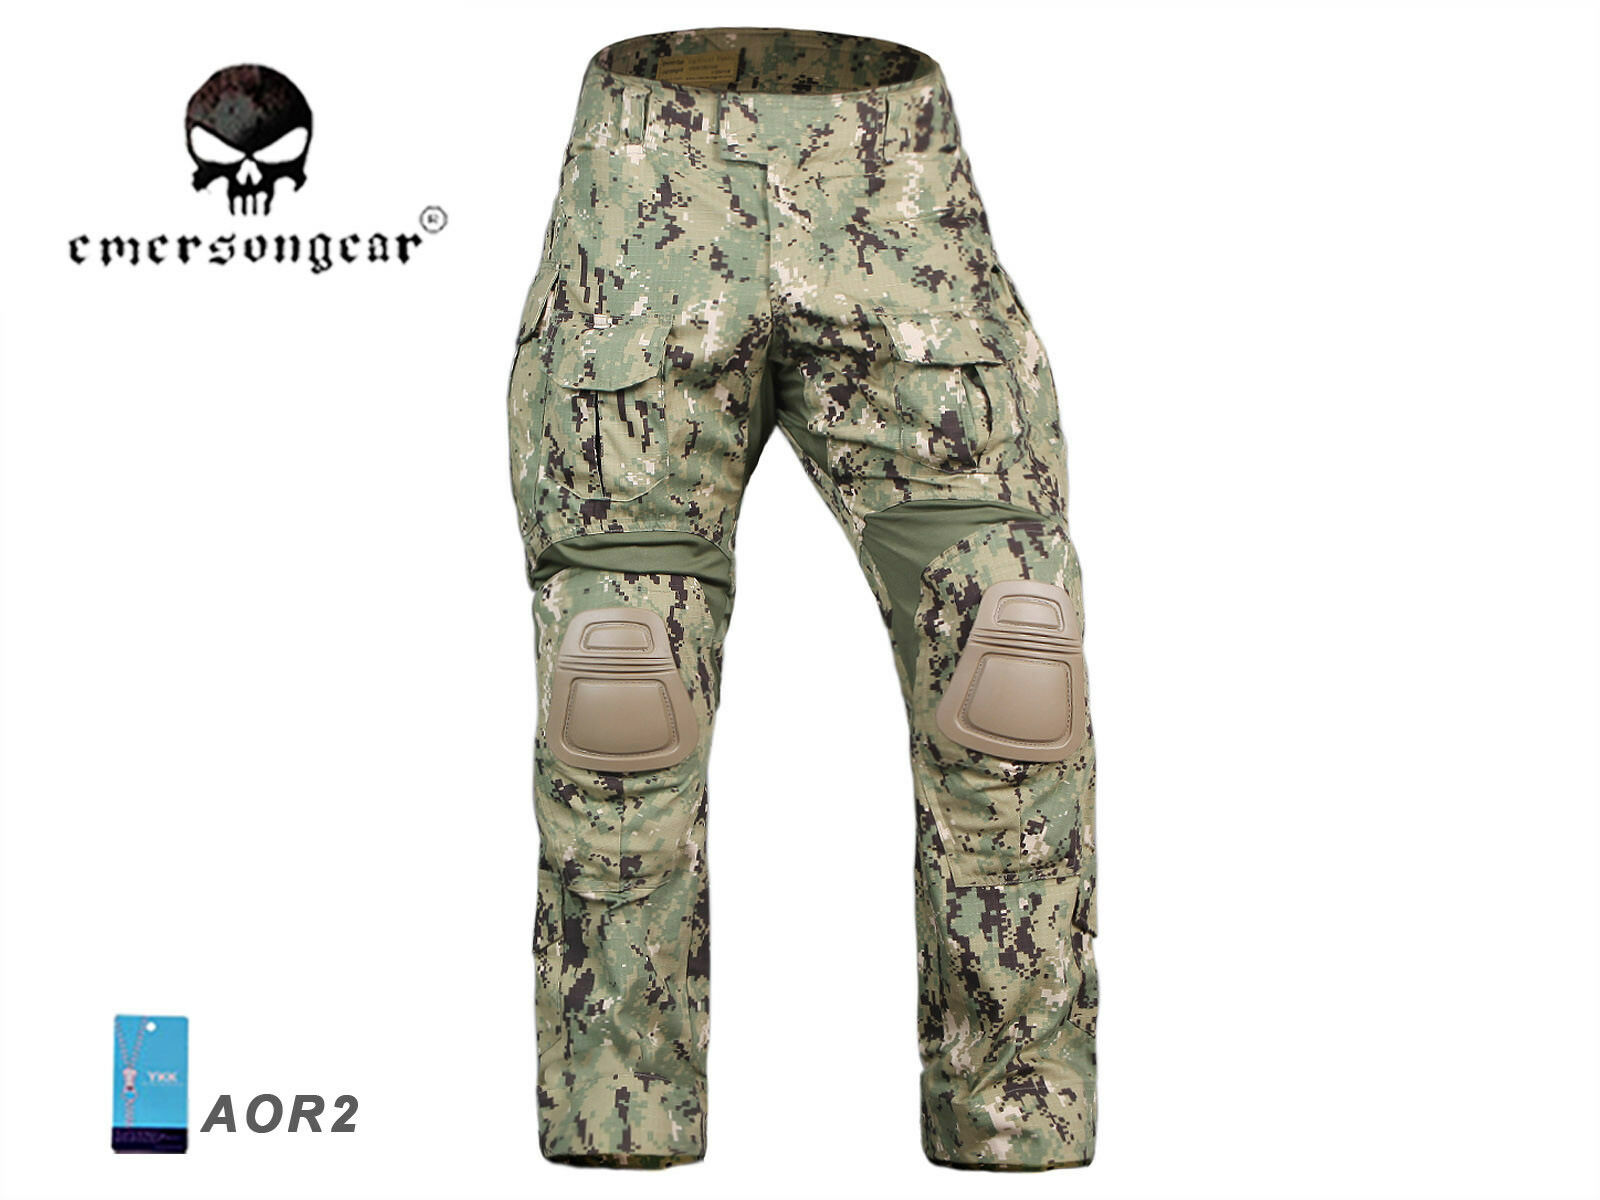 Airsoft Tactical bdu Pants Emerson Combat Gen3 Pants with Knee Pad AOR2